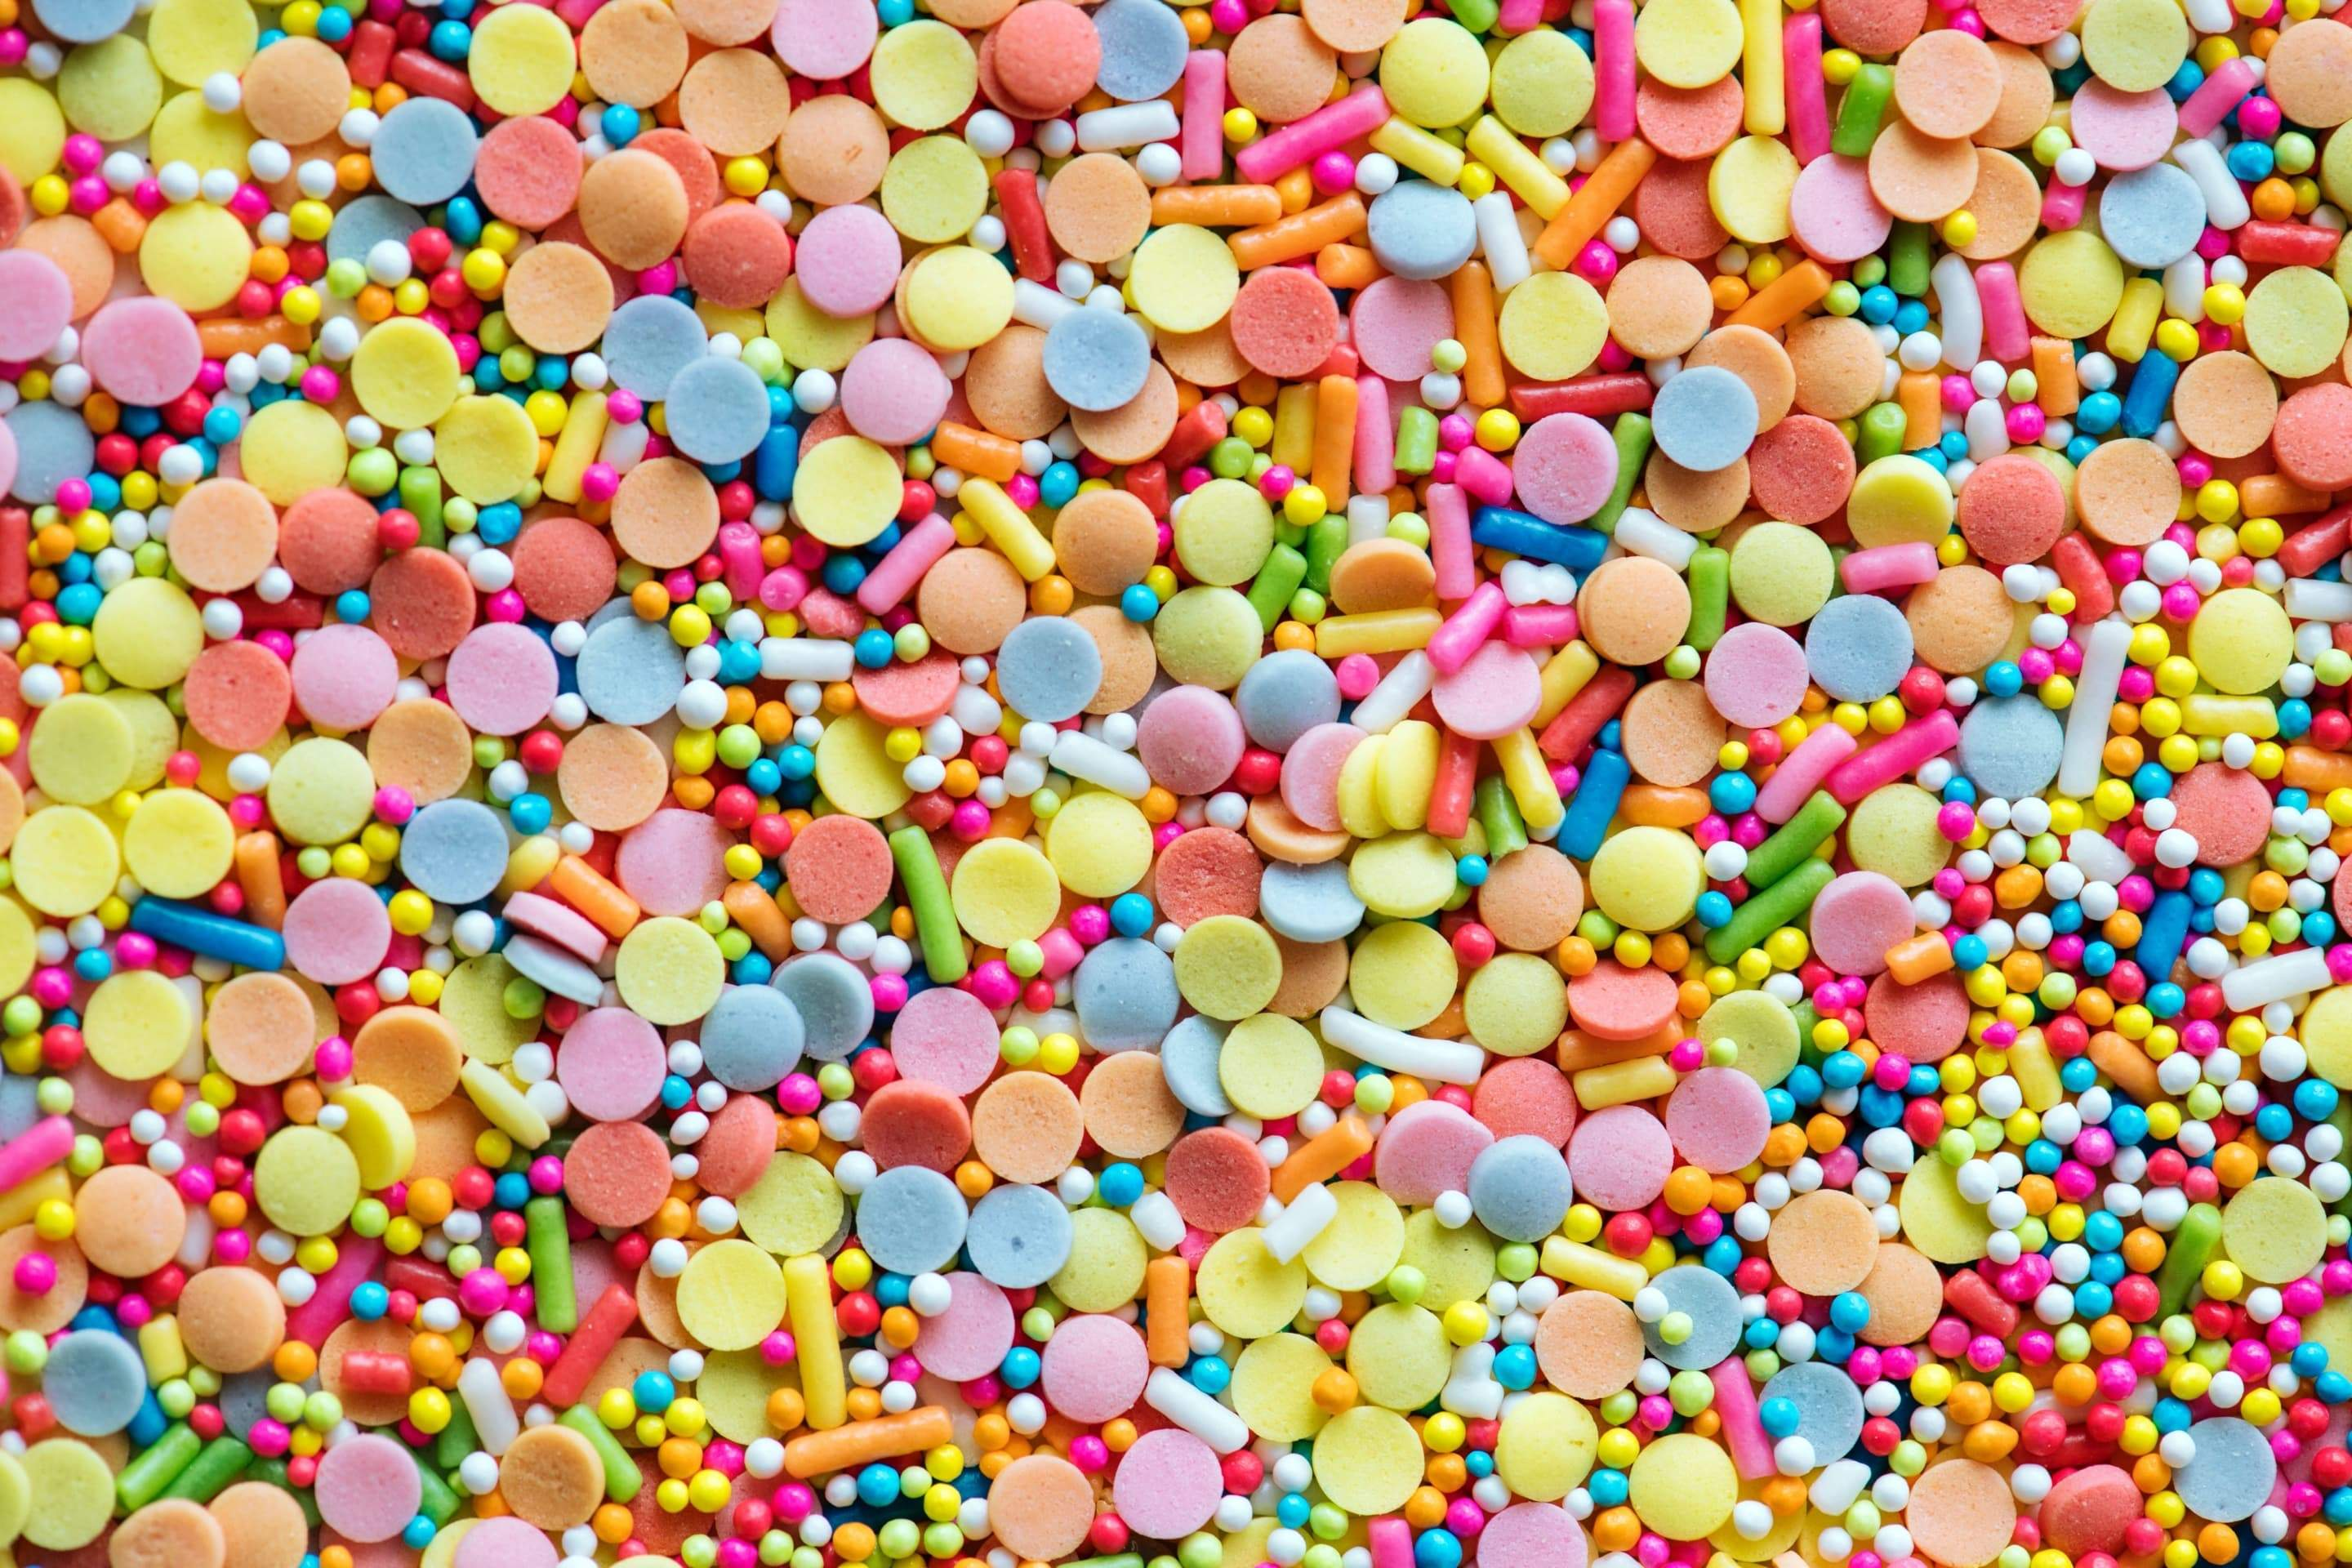 Can Sugar Really Make Your Kids Hyper?